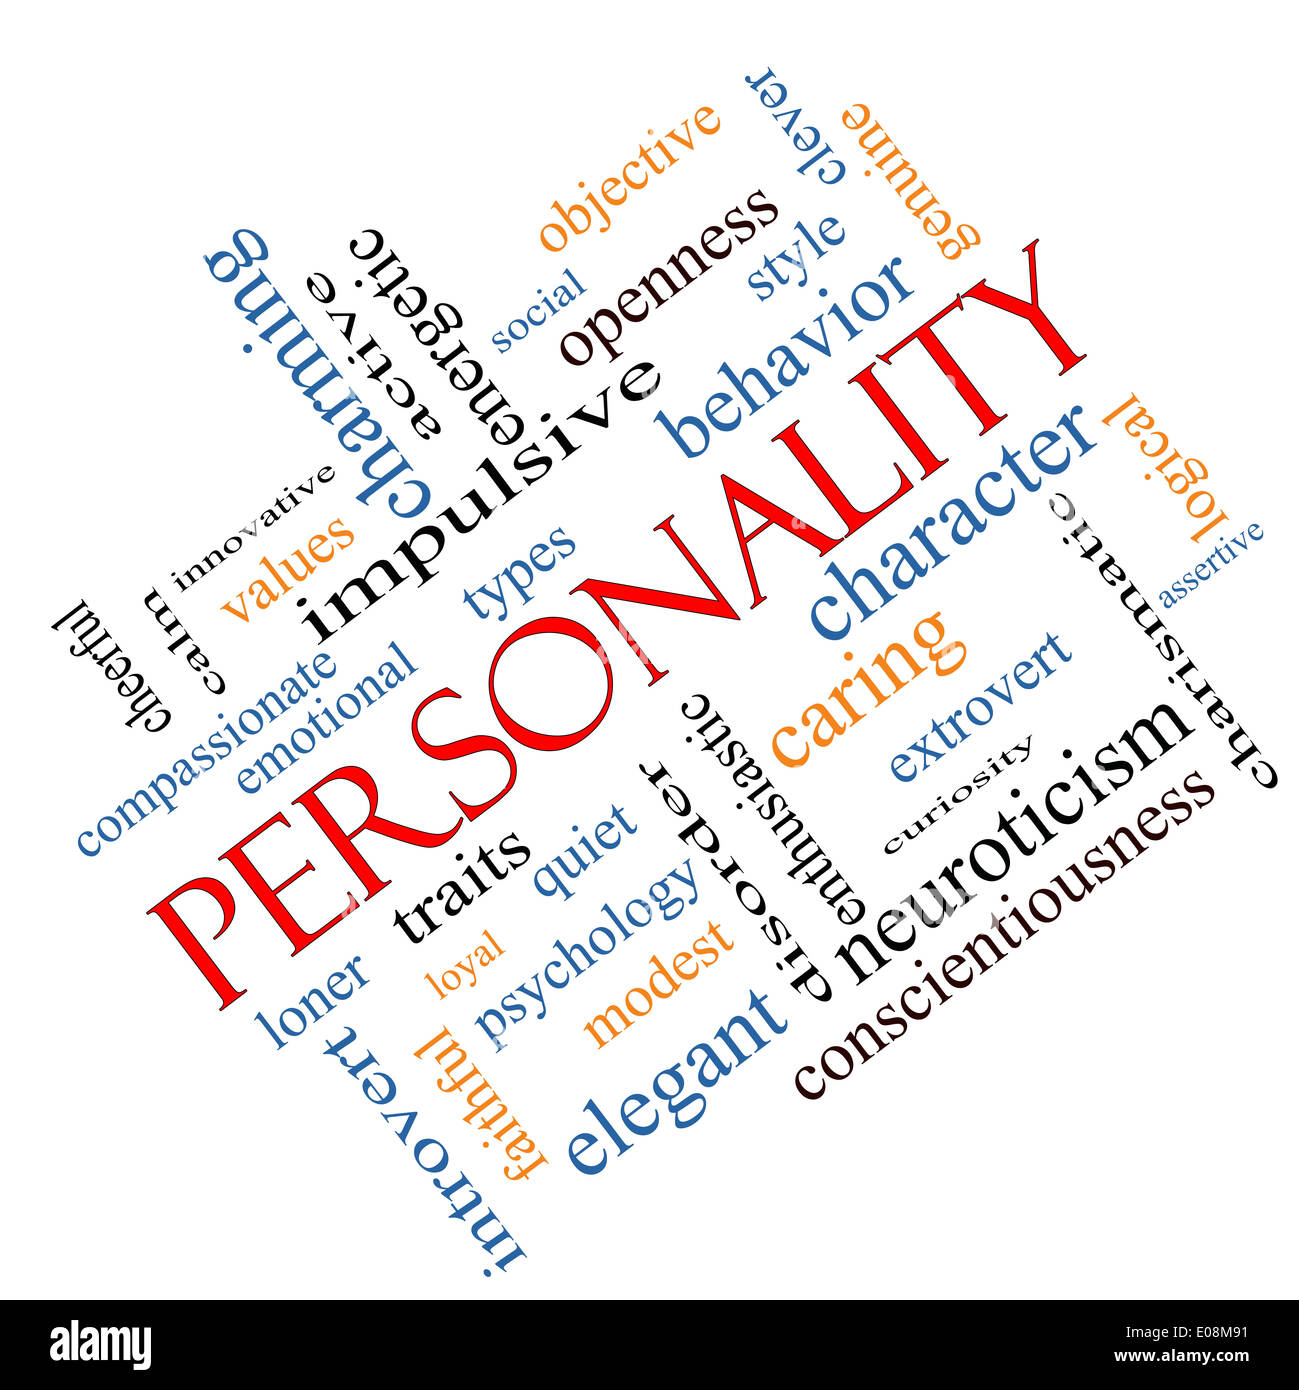 Personality Word Cloud Concept angled with great terms such as cheerful, character, behavior and more. - Stock Image